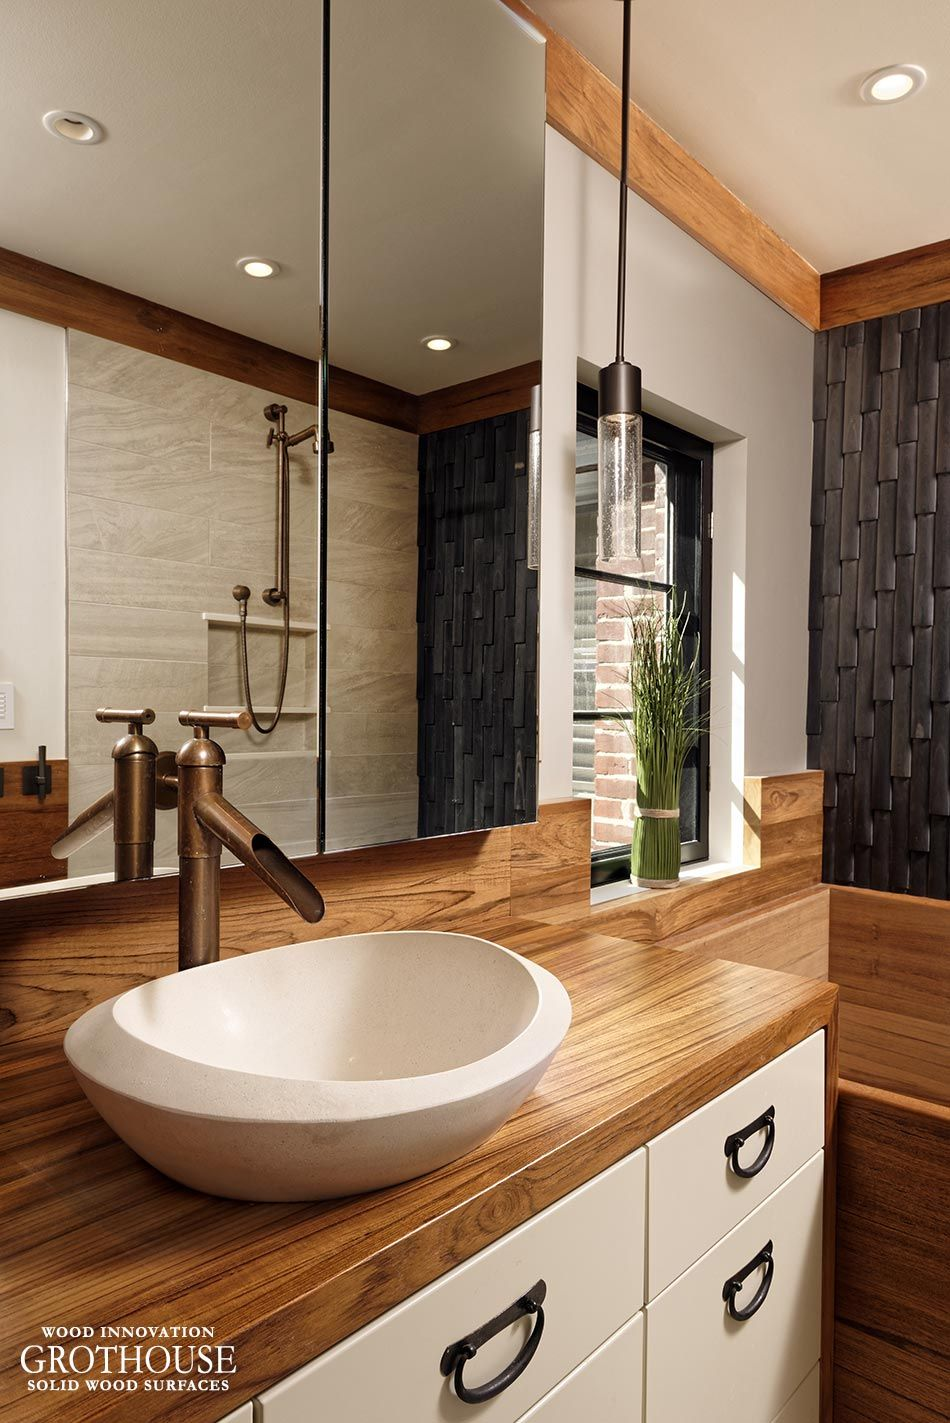 Pin by grothouse on bathrooms with wood countertops in - Custom bathroom countertops with sink ...